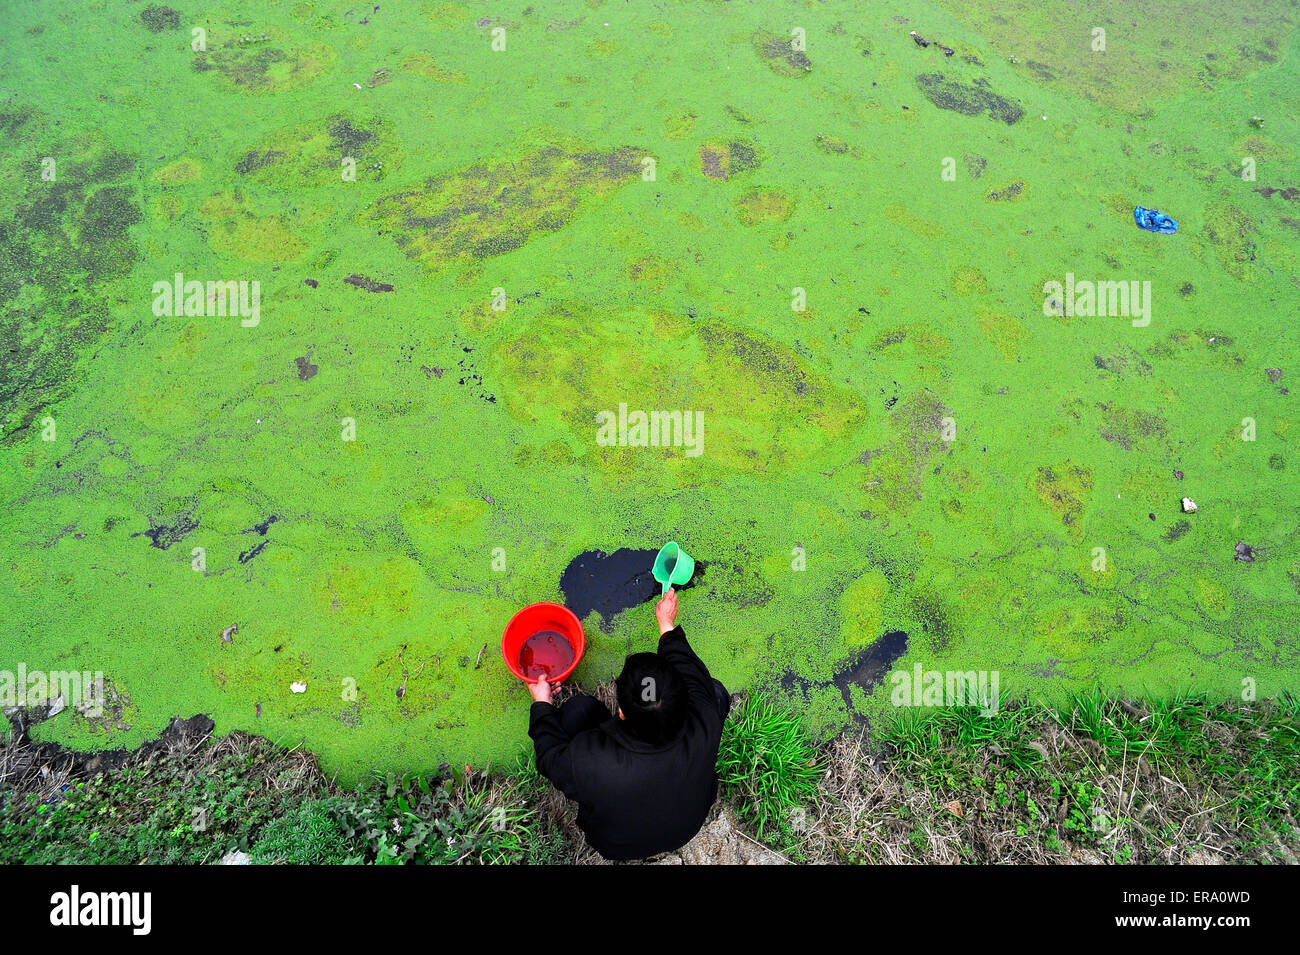 A man takes water in a pond in Xiangyang, Hubei province, China on 22 March 2015. - Stock Image